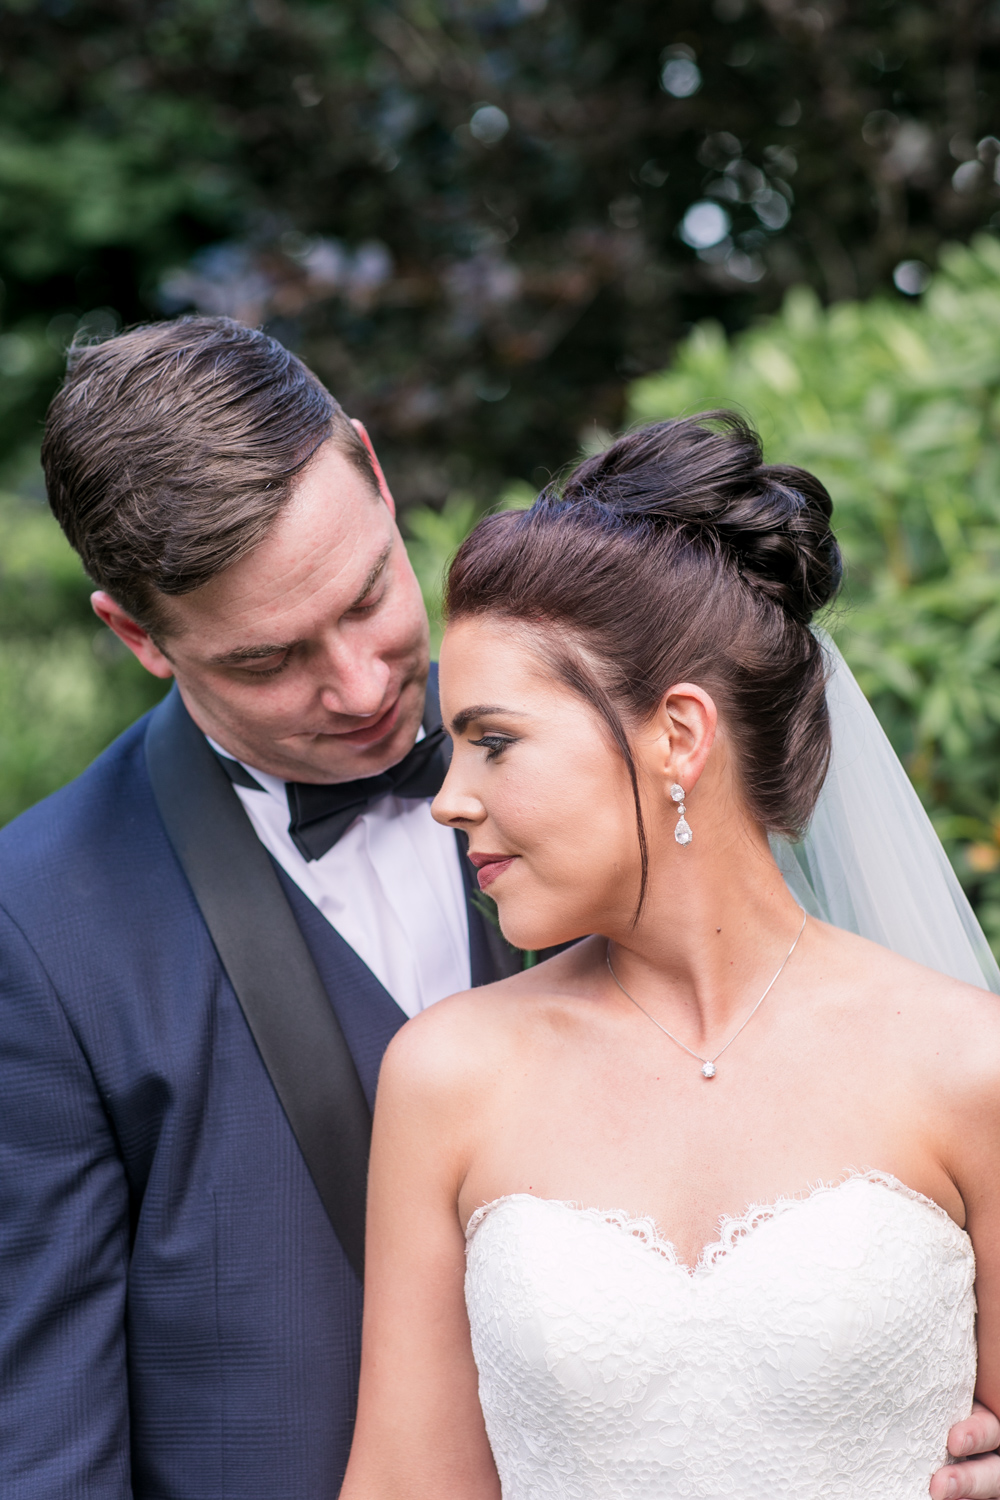 soft image of bride and groom at a black tie wedding posing on the grounds of slieve russell hotel in ireland